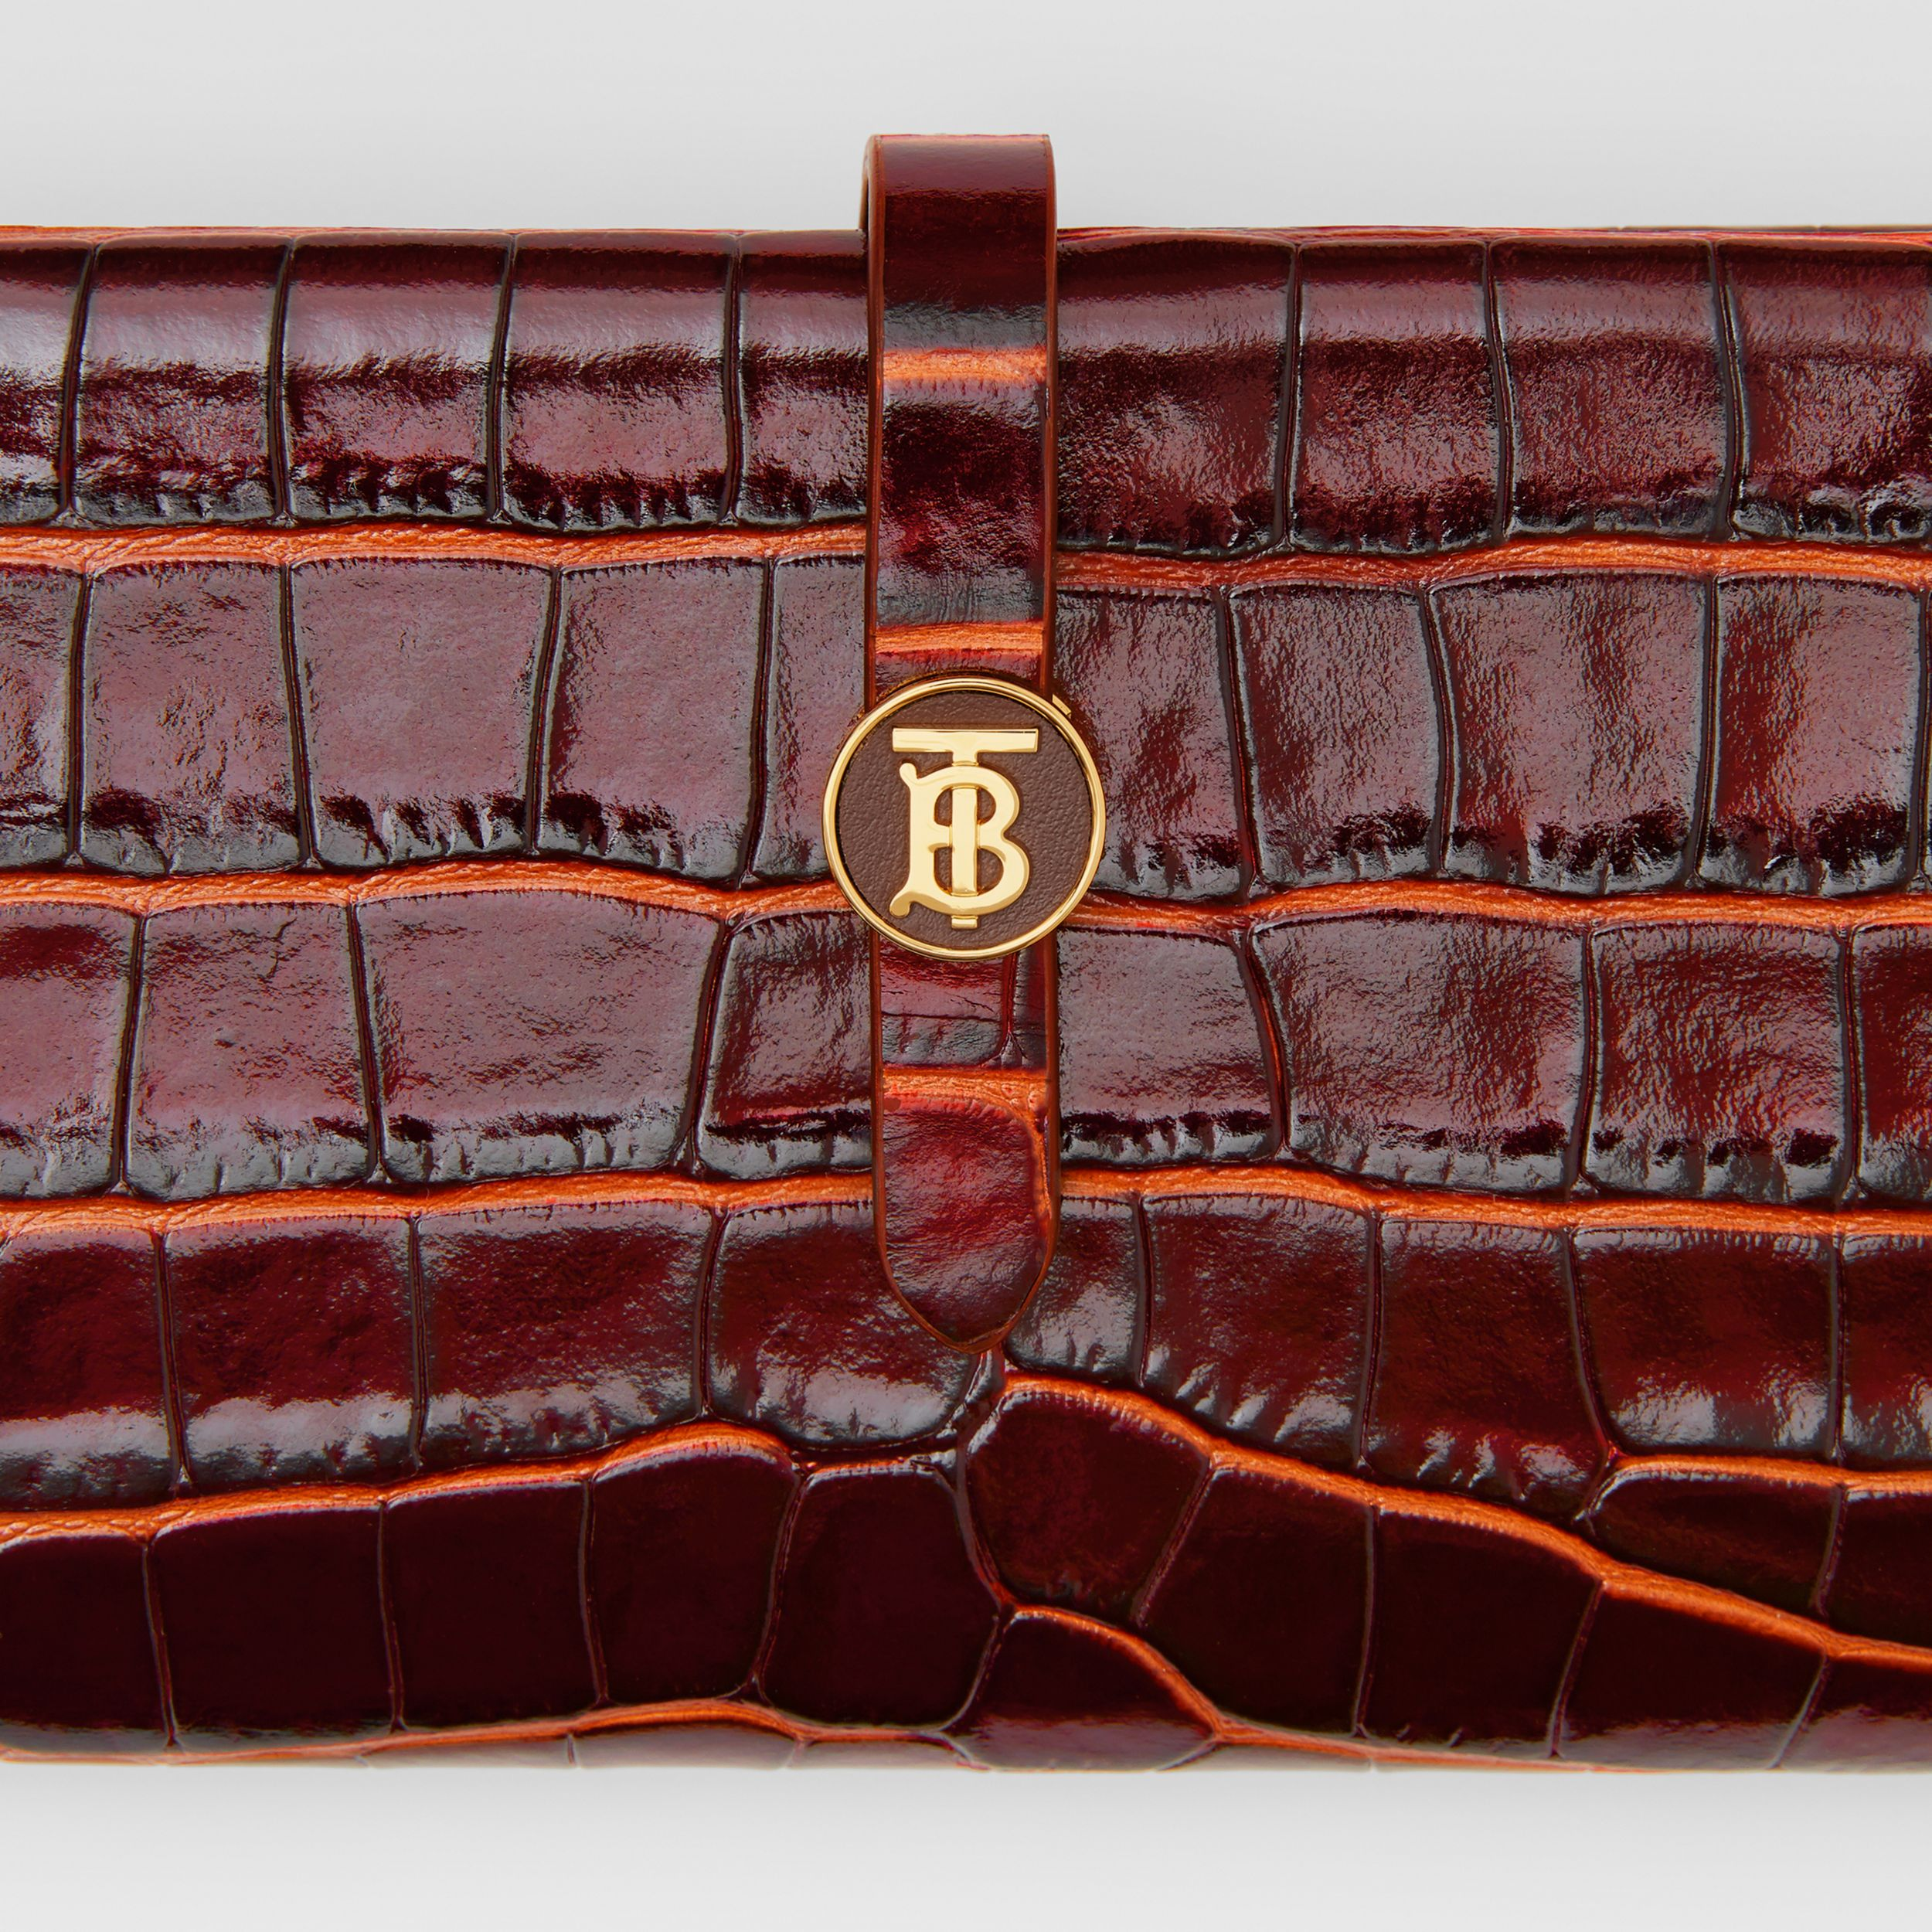 Monogram Motif Embossed Leather Folding Wallet in Tan - Women | Burberry - 2